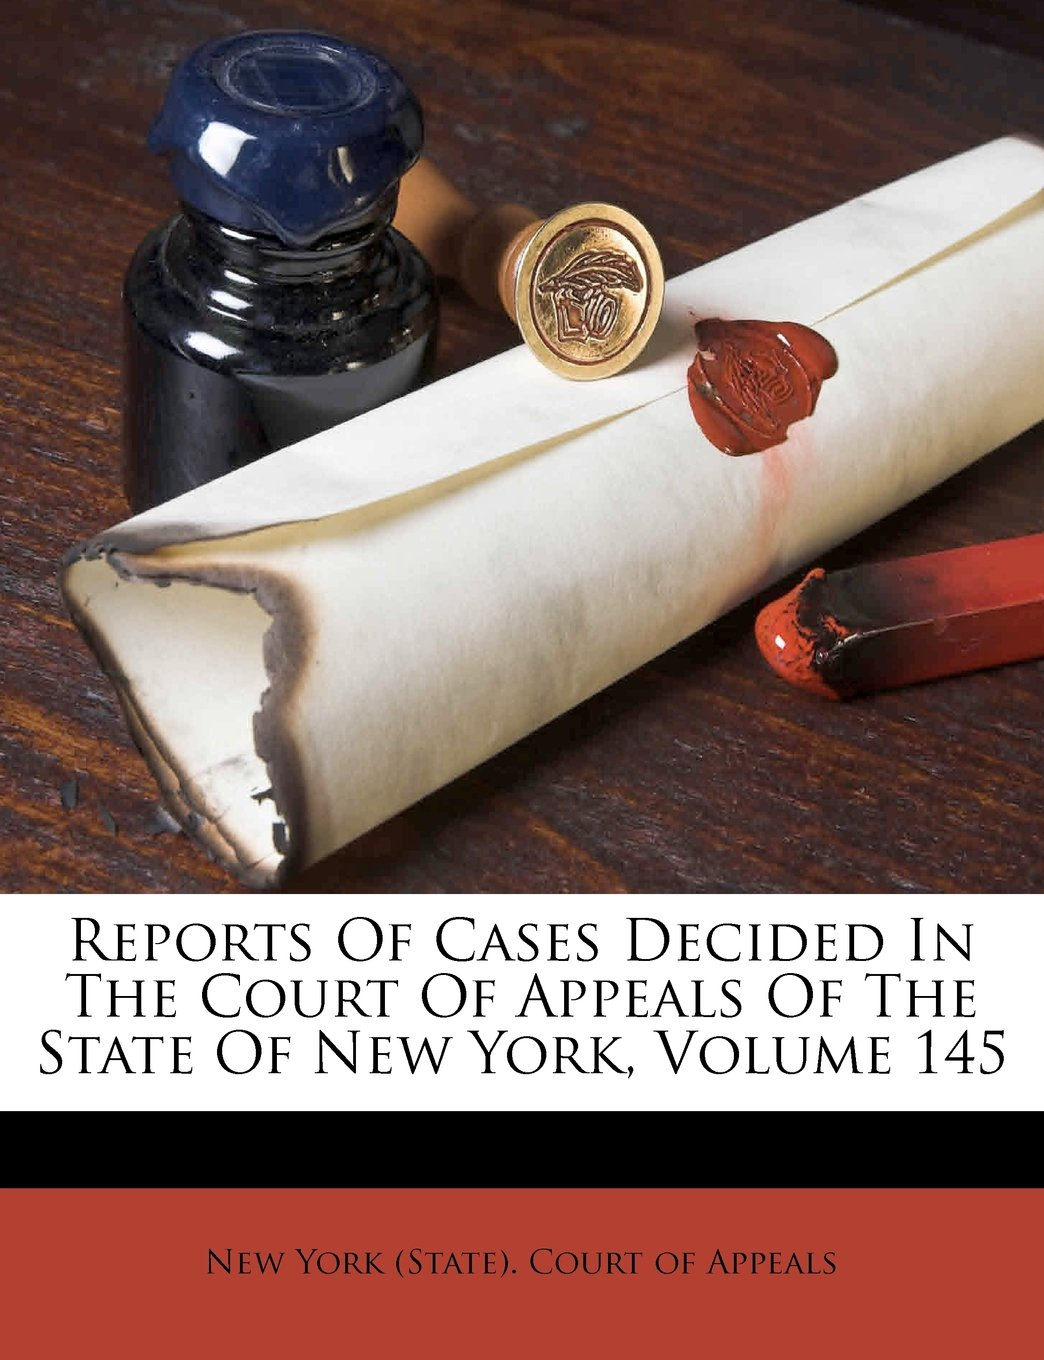 Reports Of Cases Decided In The Court Of Appeals Of The State Of New York, Volume 145 ebook